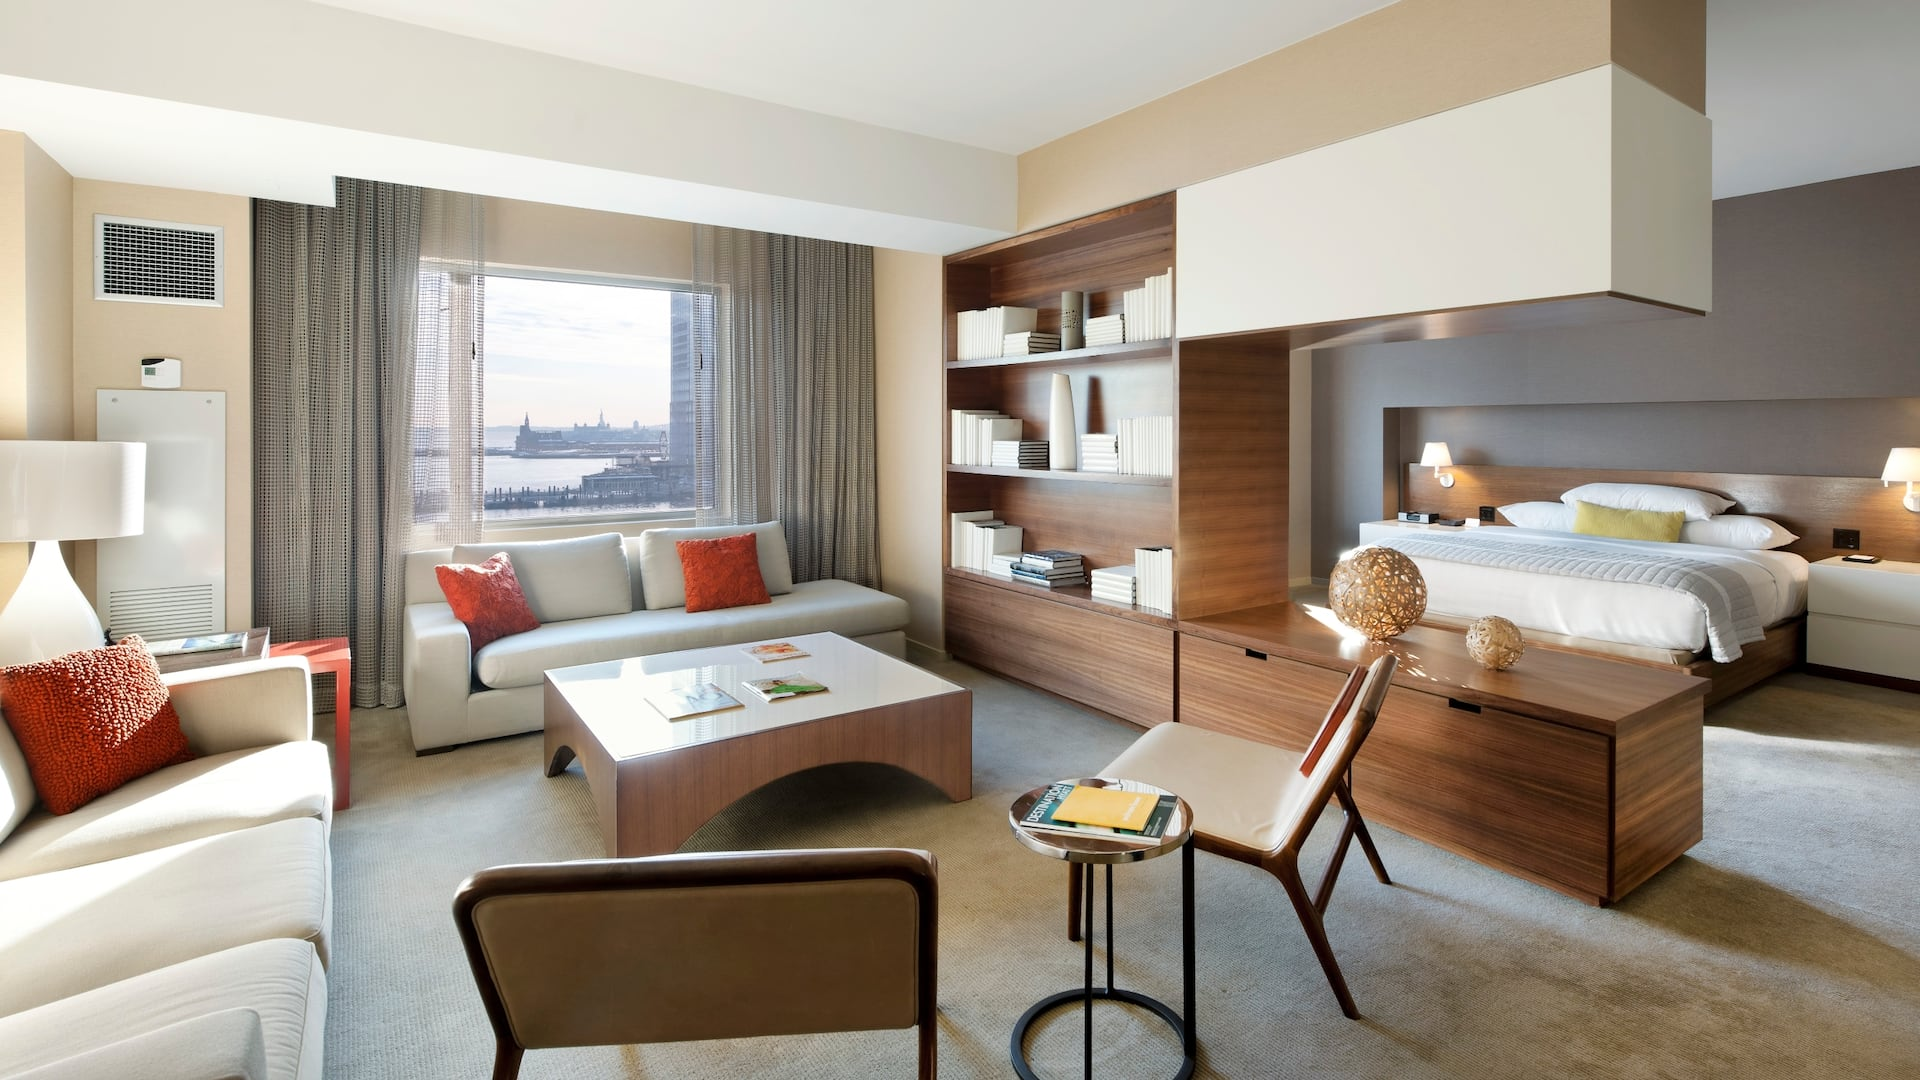 Hotel suite in Jersey City with a waterfront view of the Hudson River